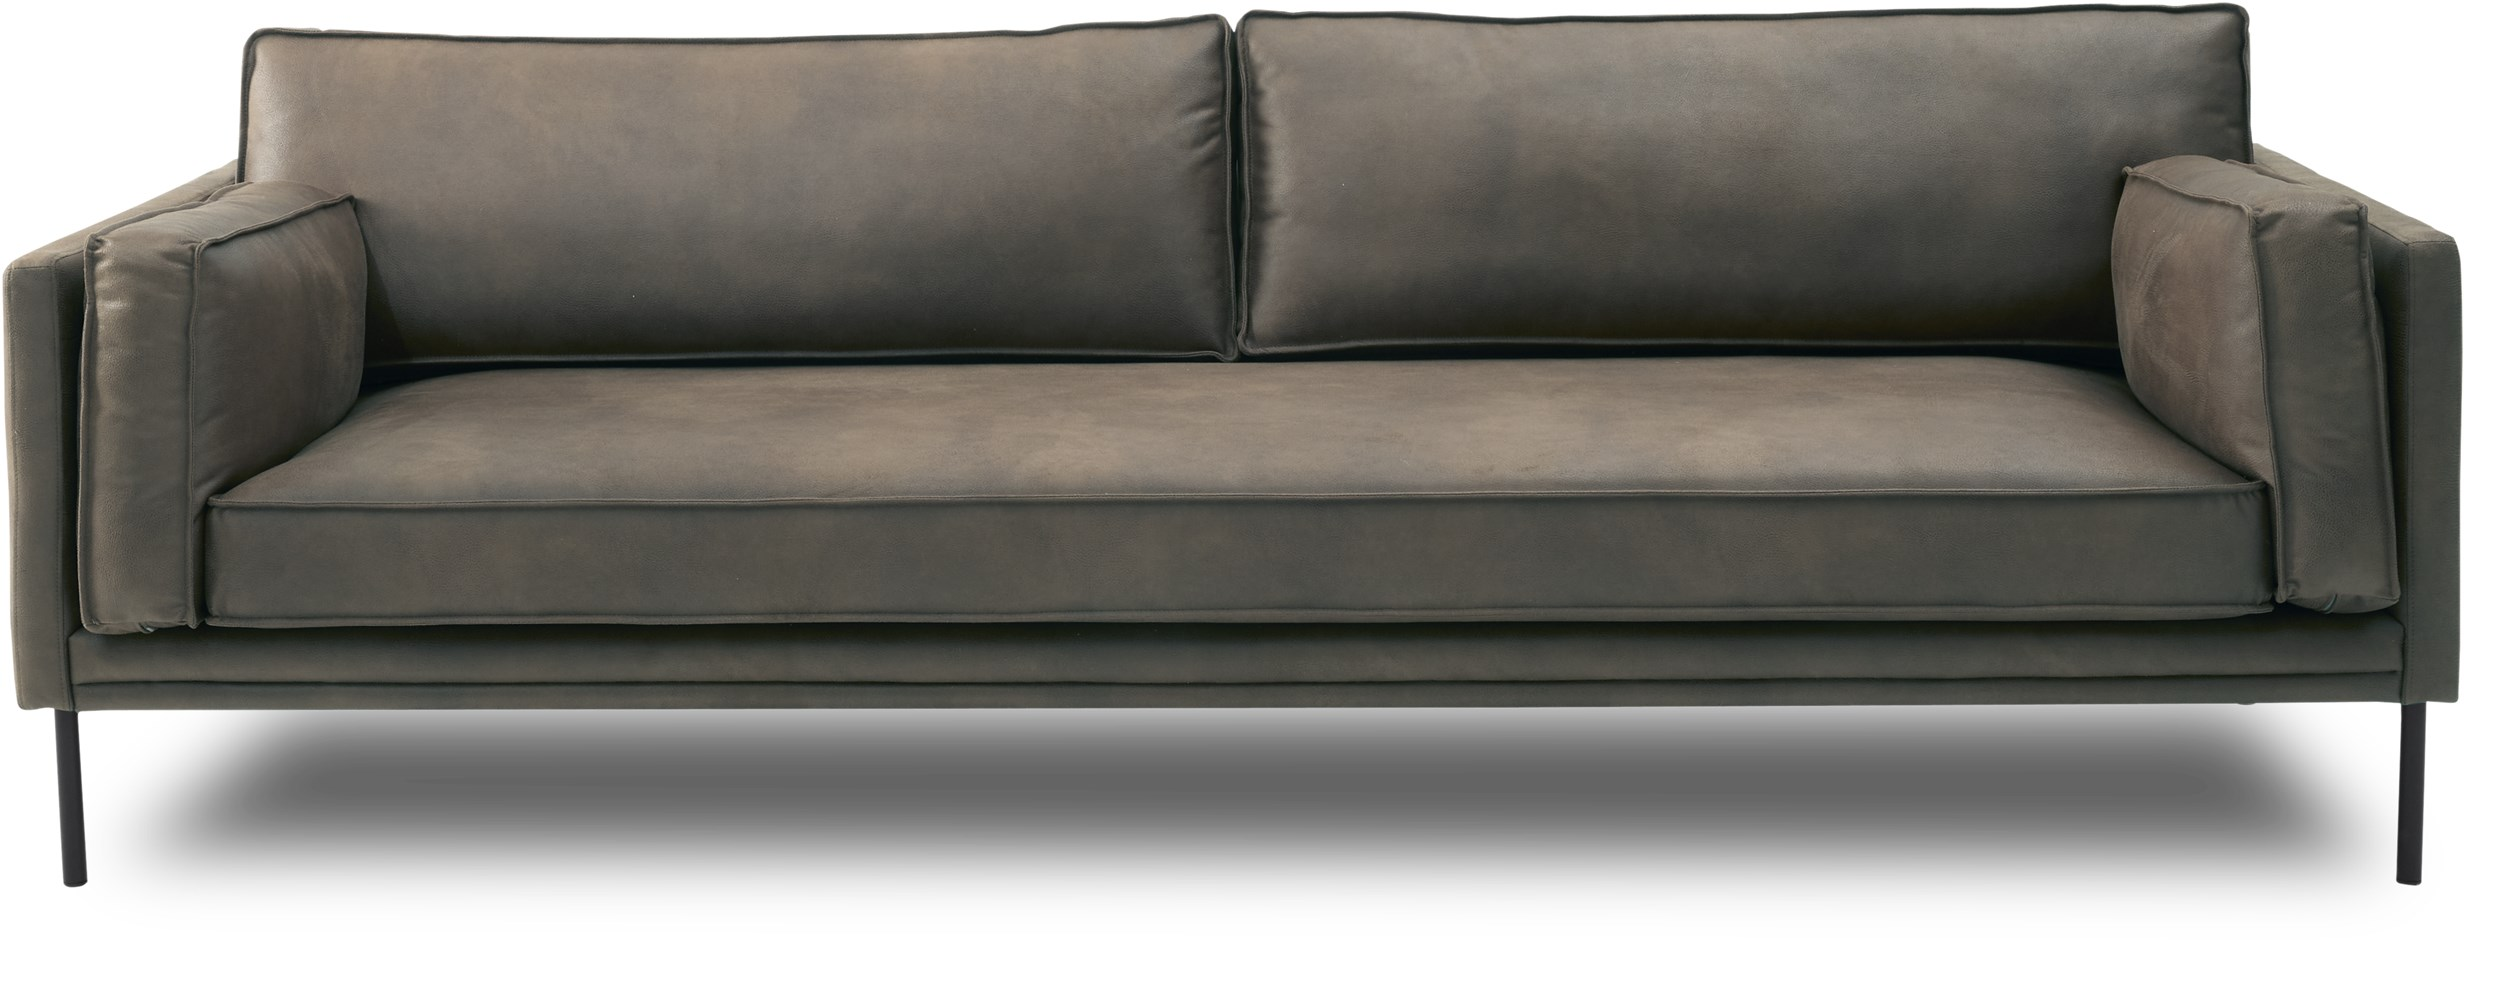 Keep 3 pers Sofa - Kentucky 0262 Grey bonded læder og ben i sort metal